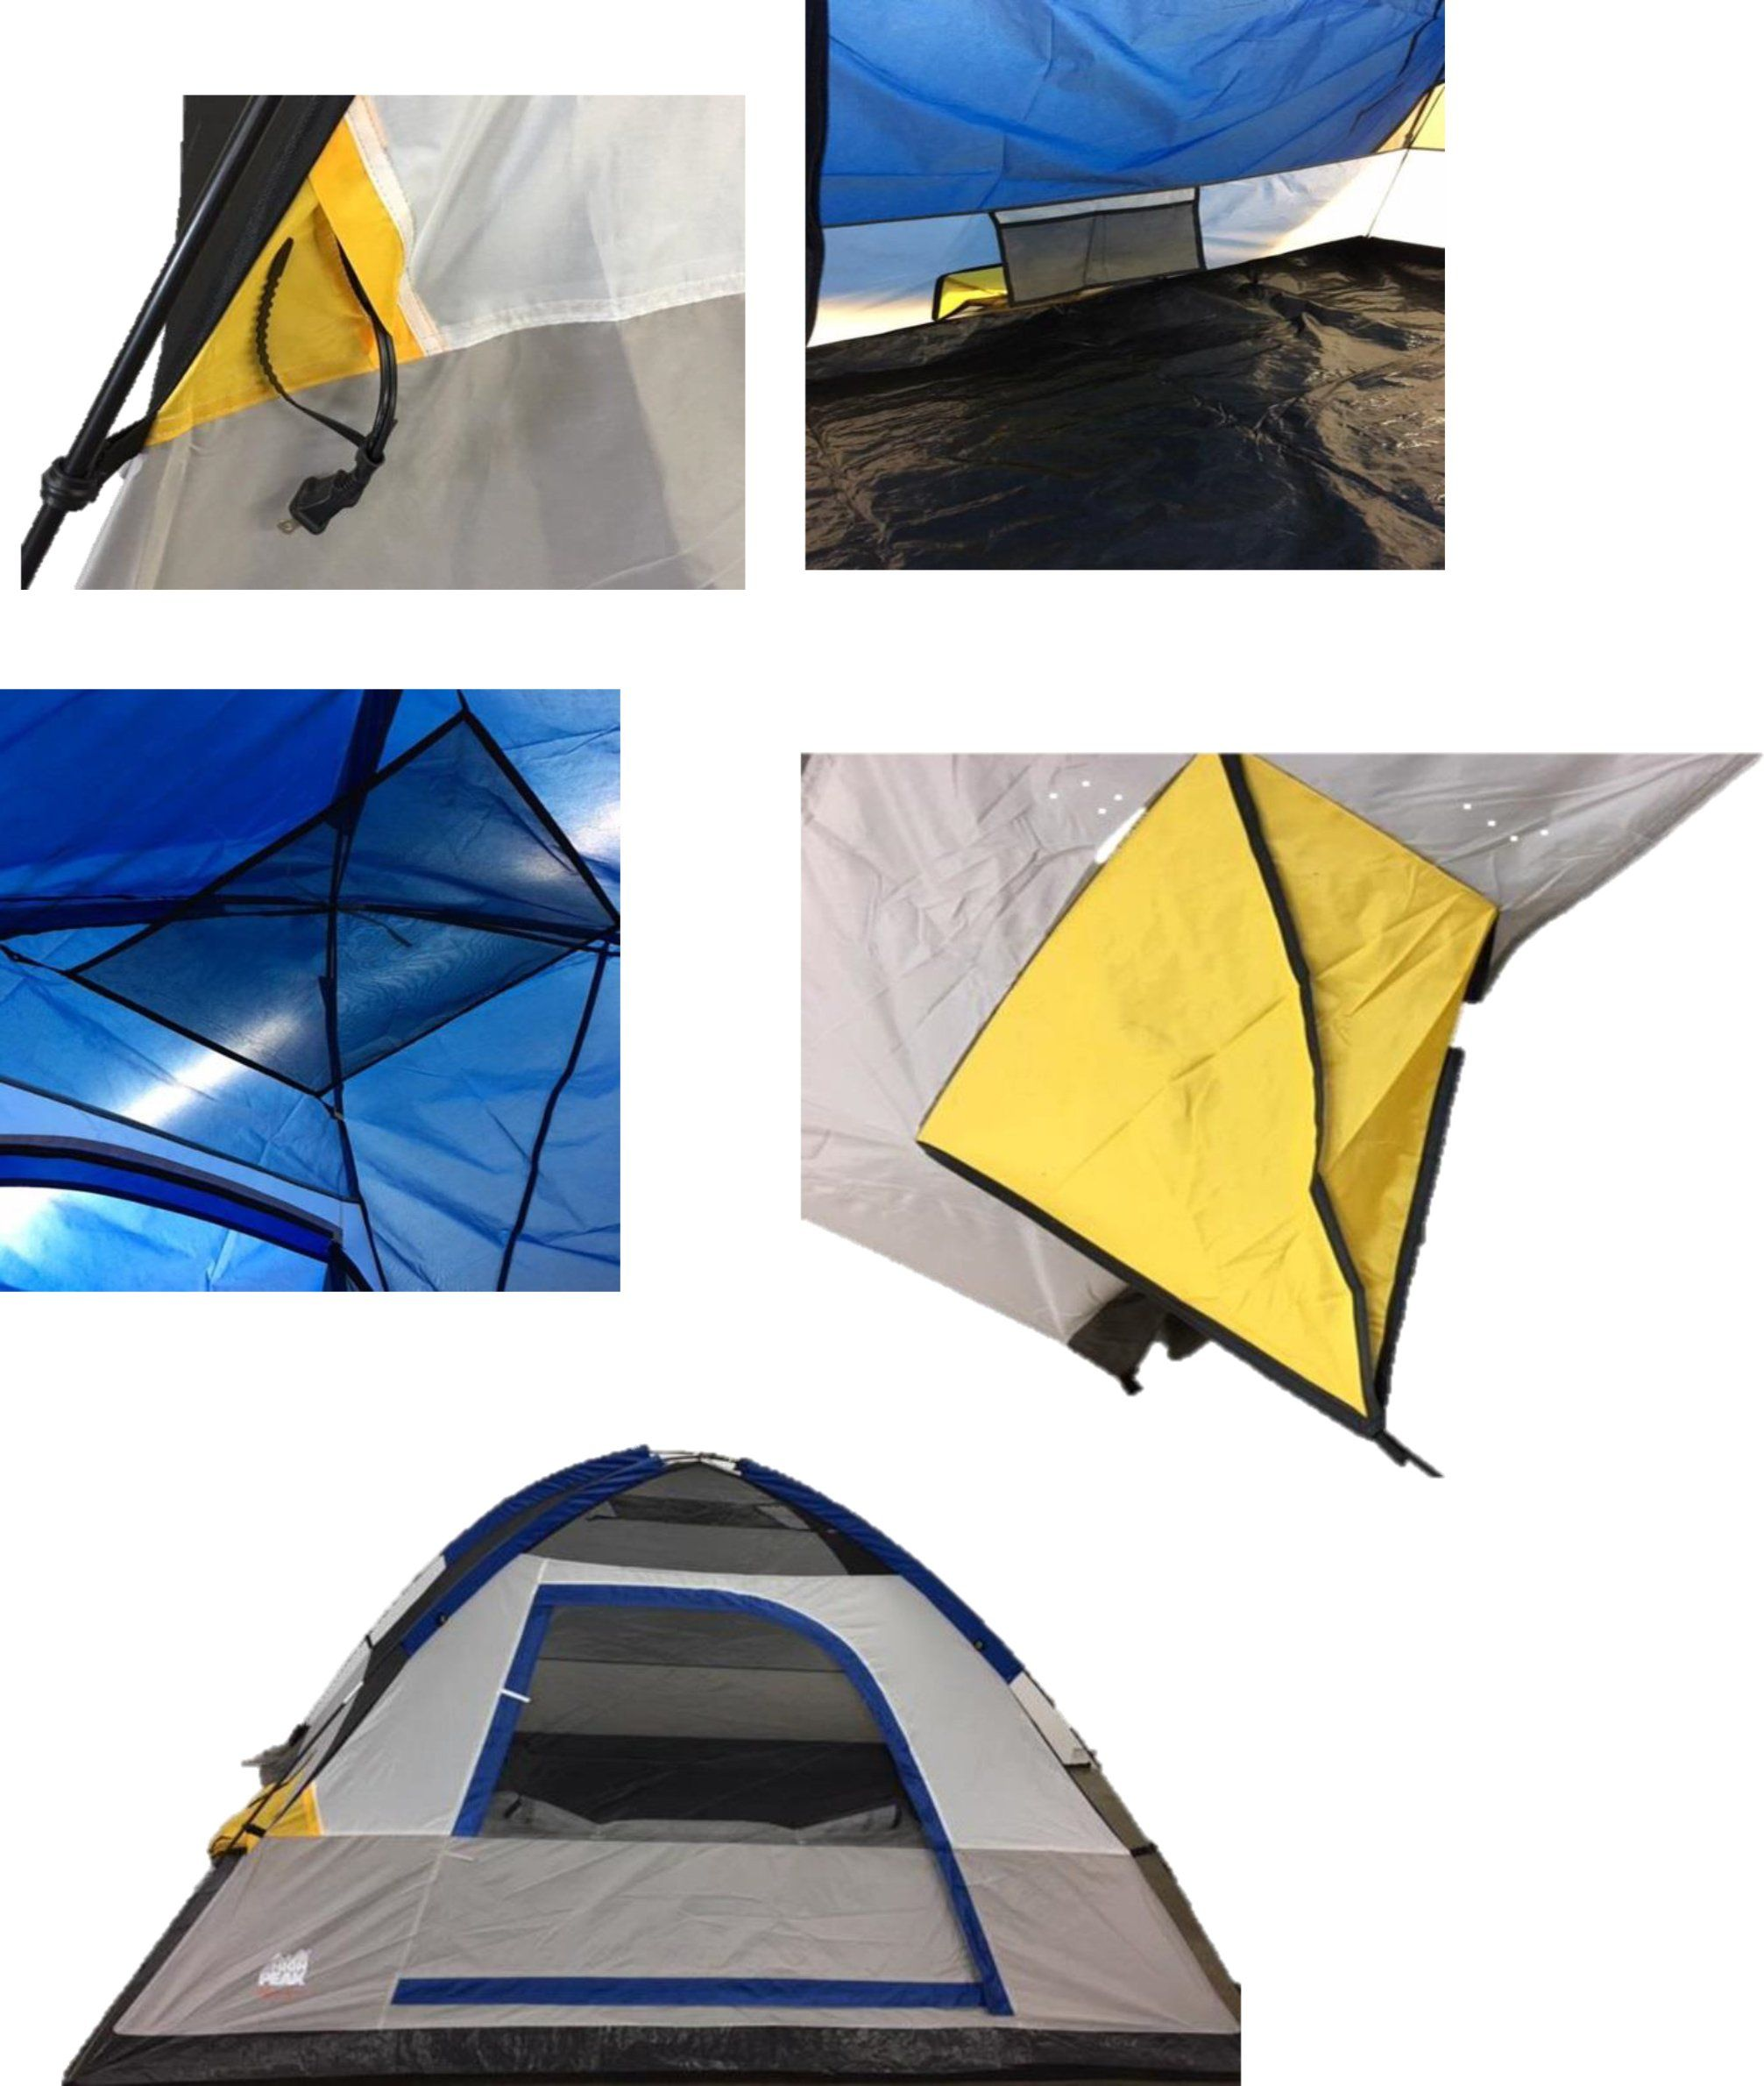 High Peak USA Alpinizmo Ultra Lite 20F Water Proof 0F Sleeping Bag and 5 Men Tent Combo One Size Blue/Orange u003eu003eu003e Read more at the image link.  sc 1 st  Pinterest & High Peak USA Alpinizmo Ultra Lite 20F Water Proof 0F Sleeping Bag ...